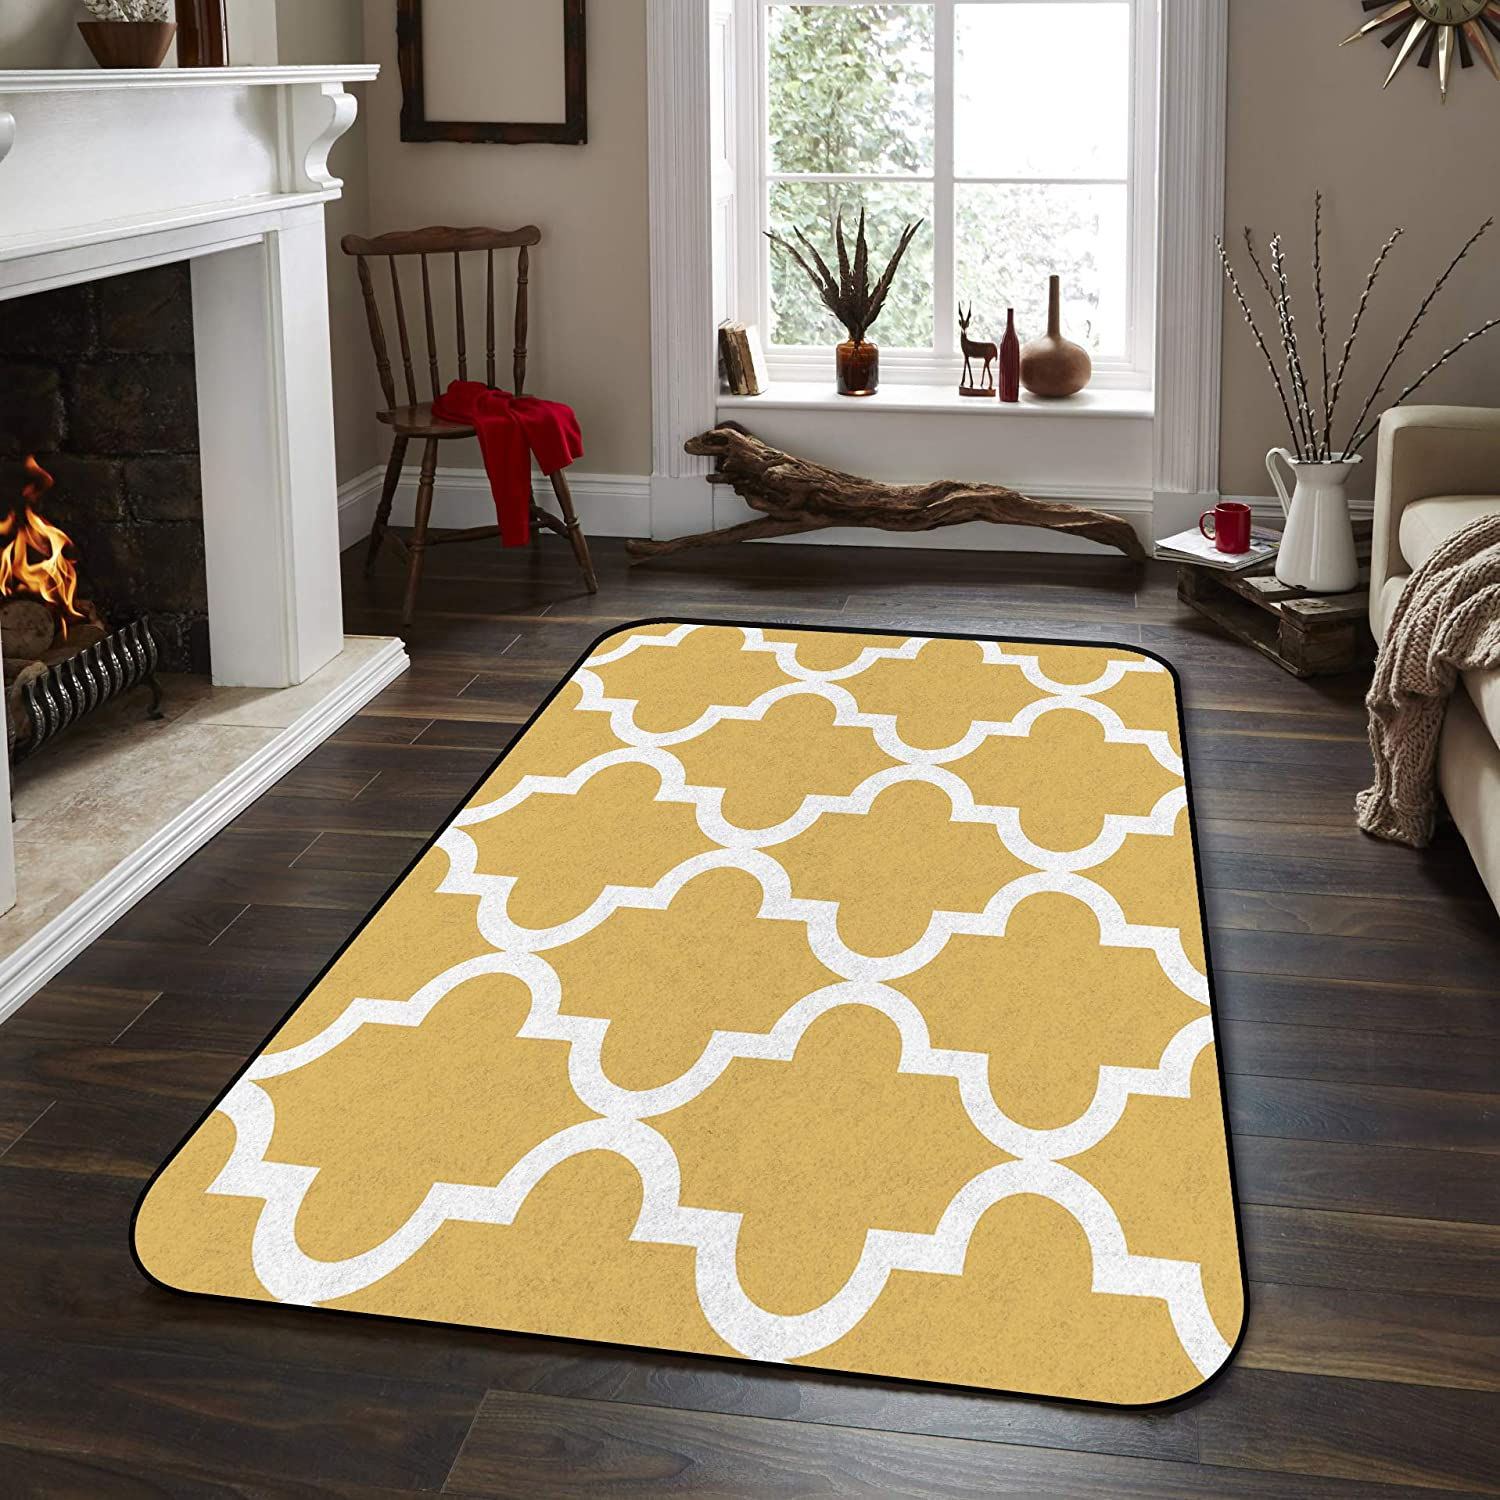 Soft New Discount is also underway sales Area Rugs for Bedroom Morocco Flo Rug Decor Carpet Washable